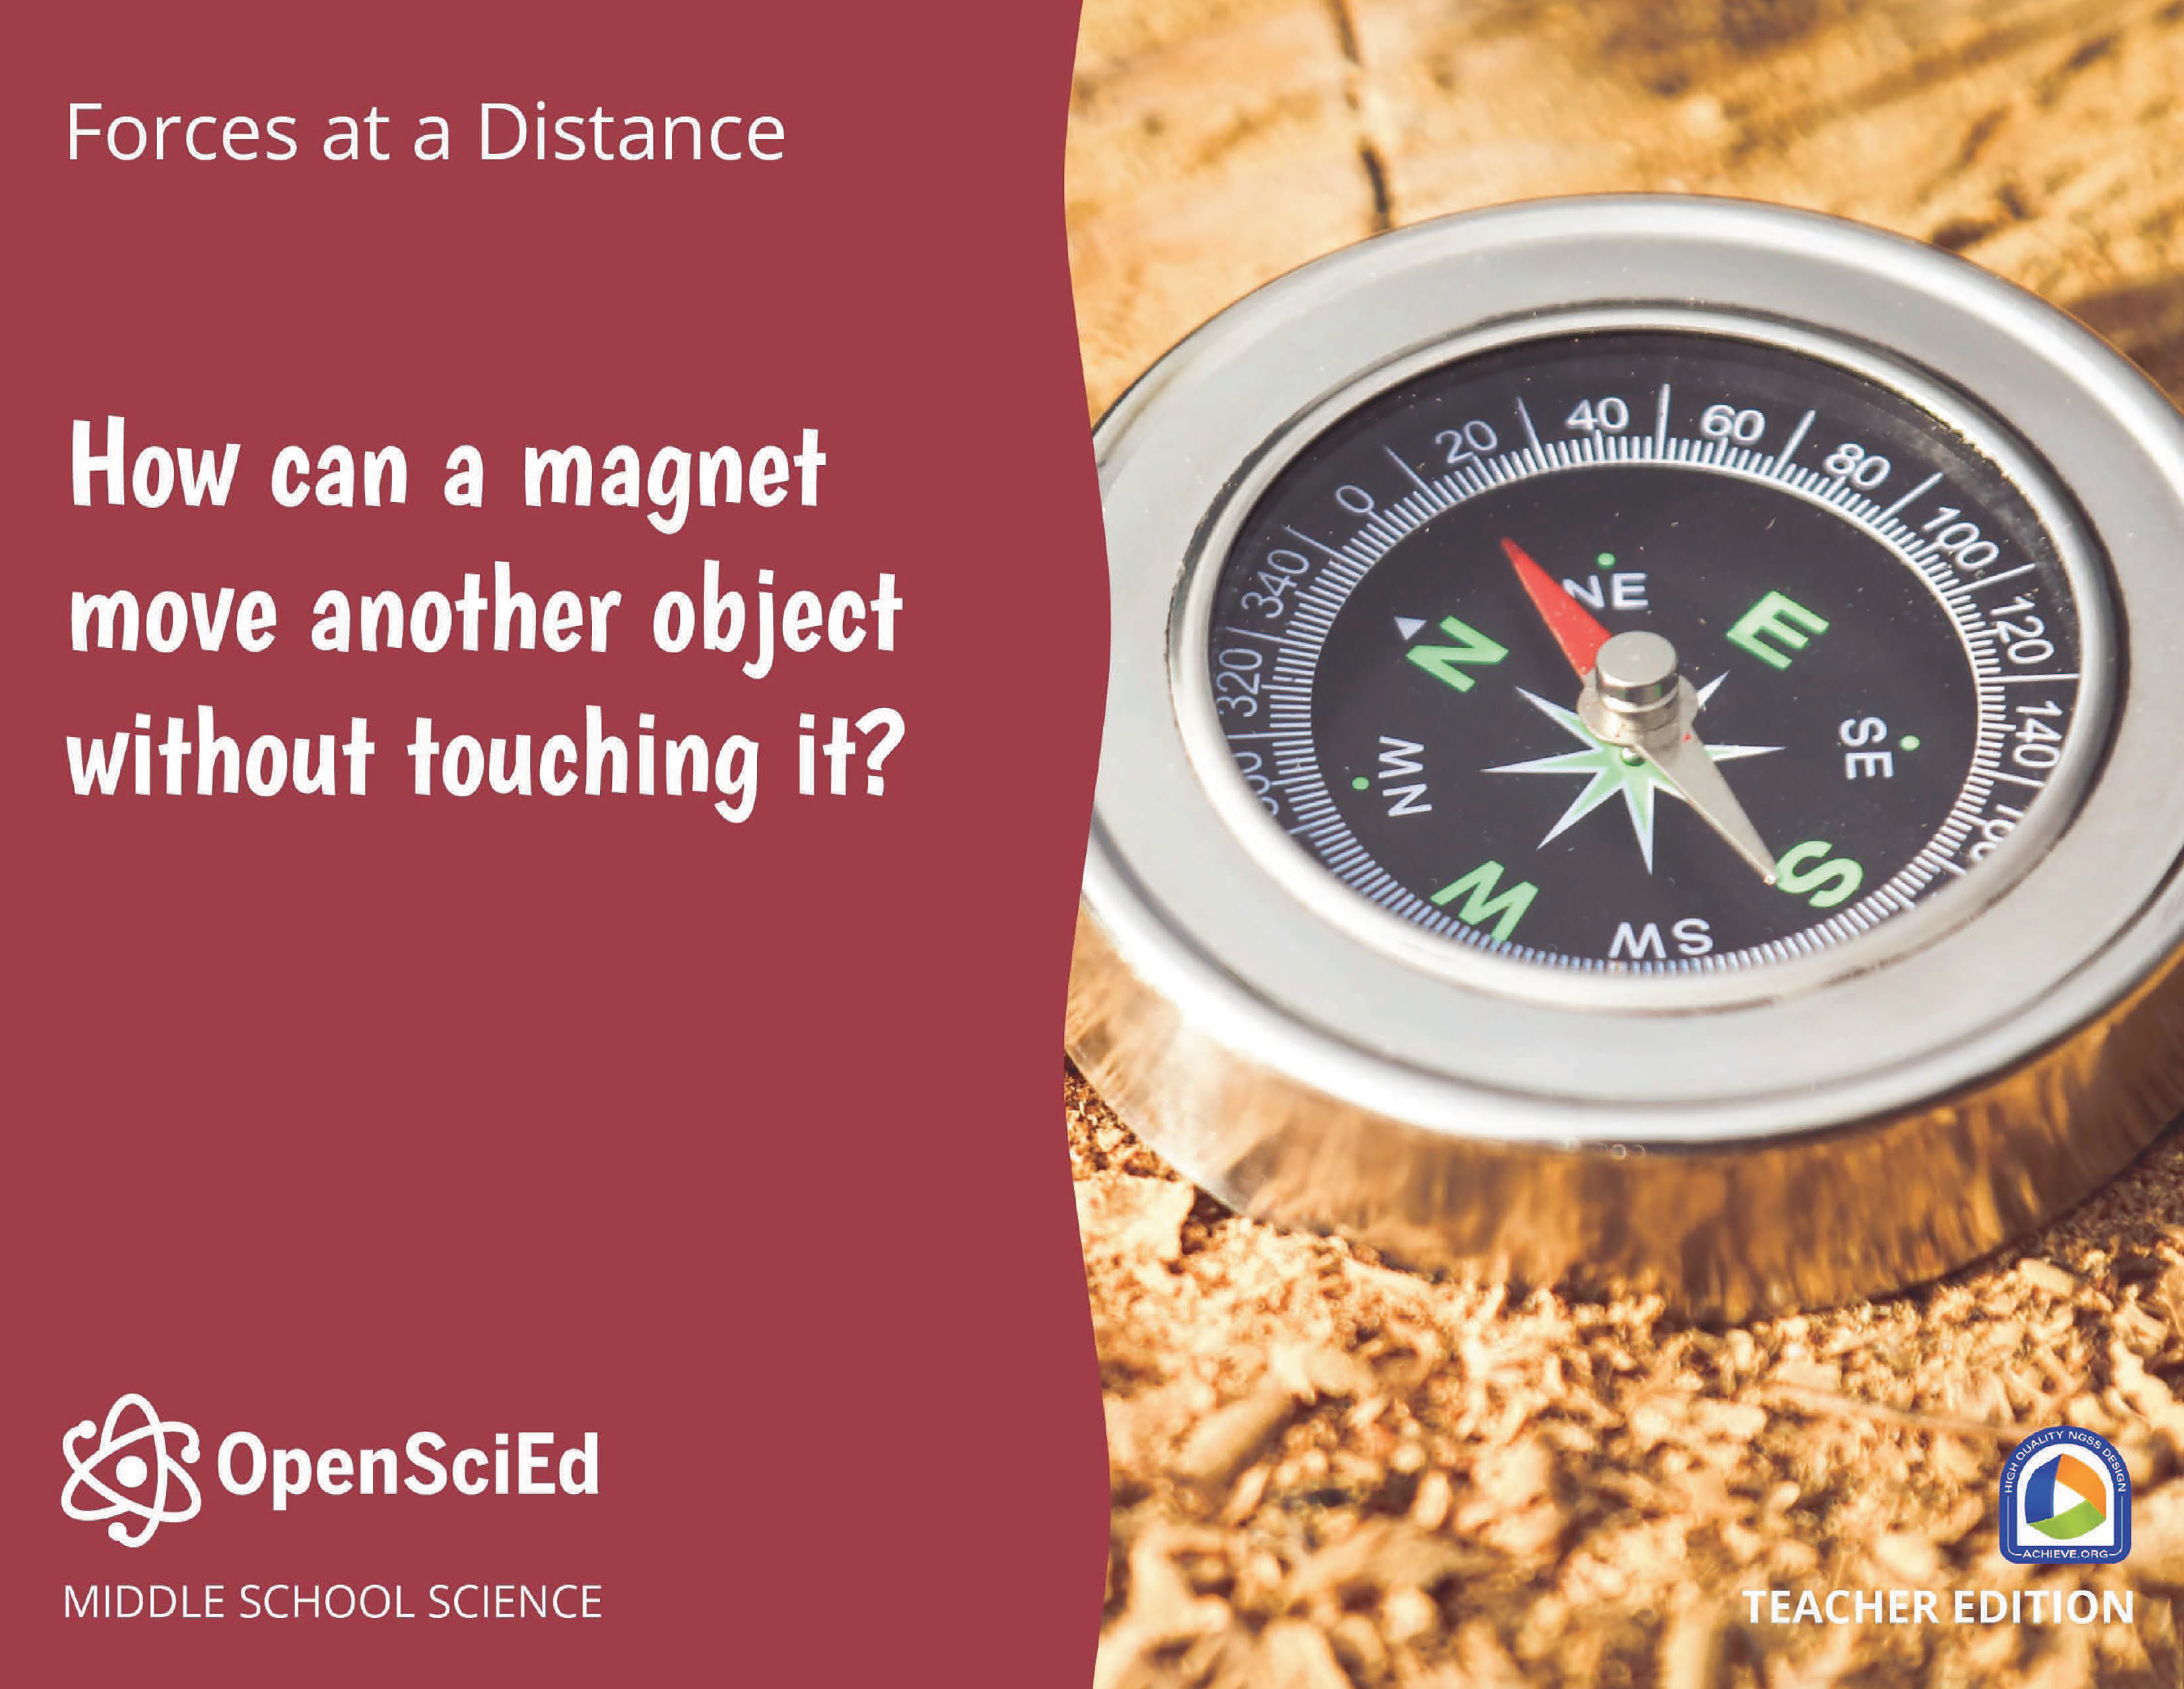 OpenSciEd Unit 8.3: Forces at a Distance Teacher Edition